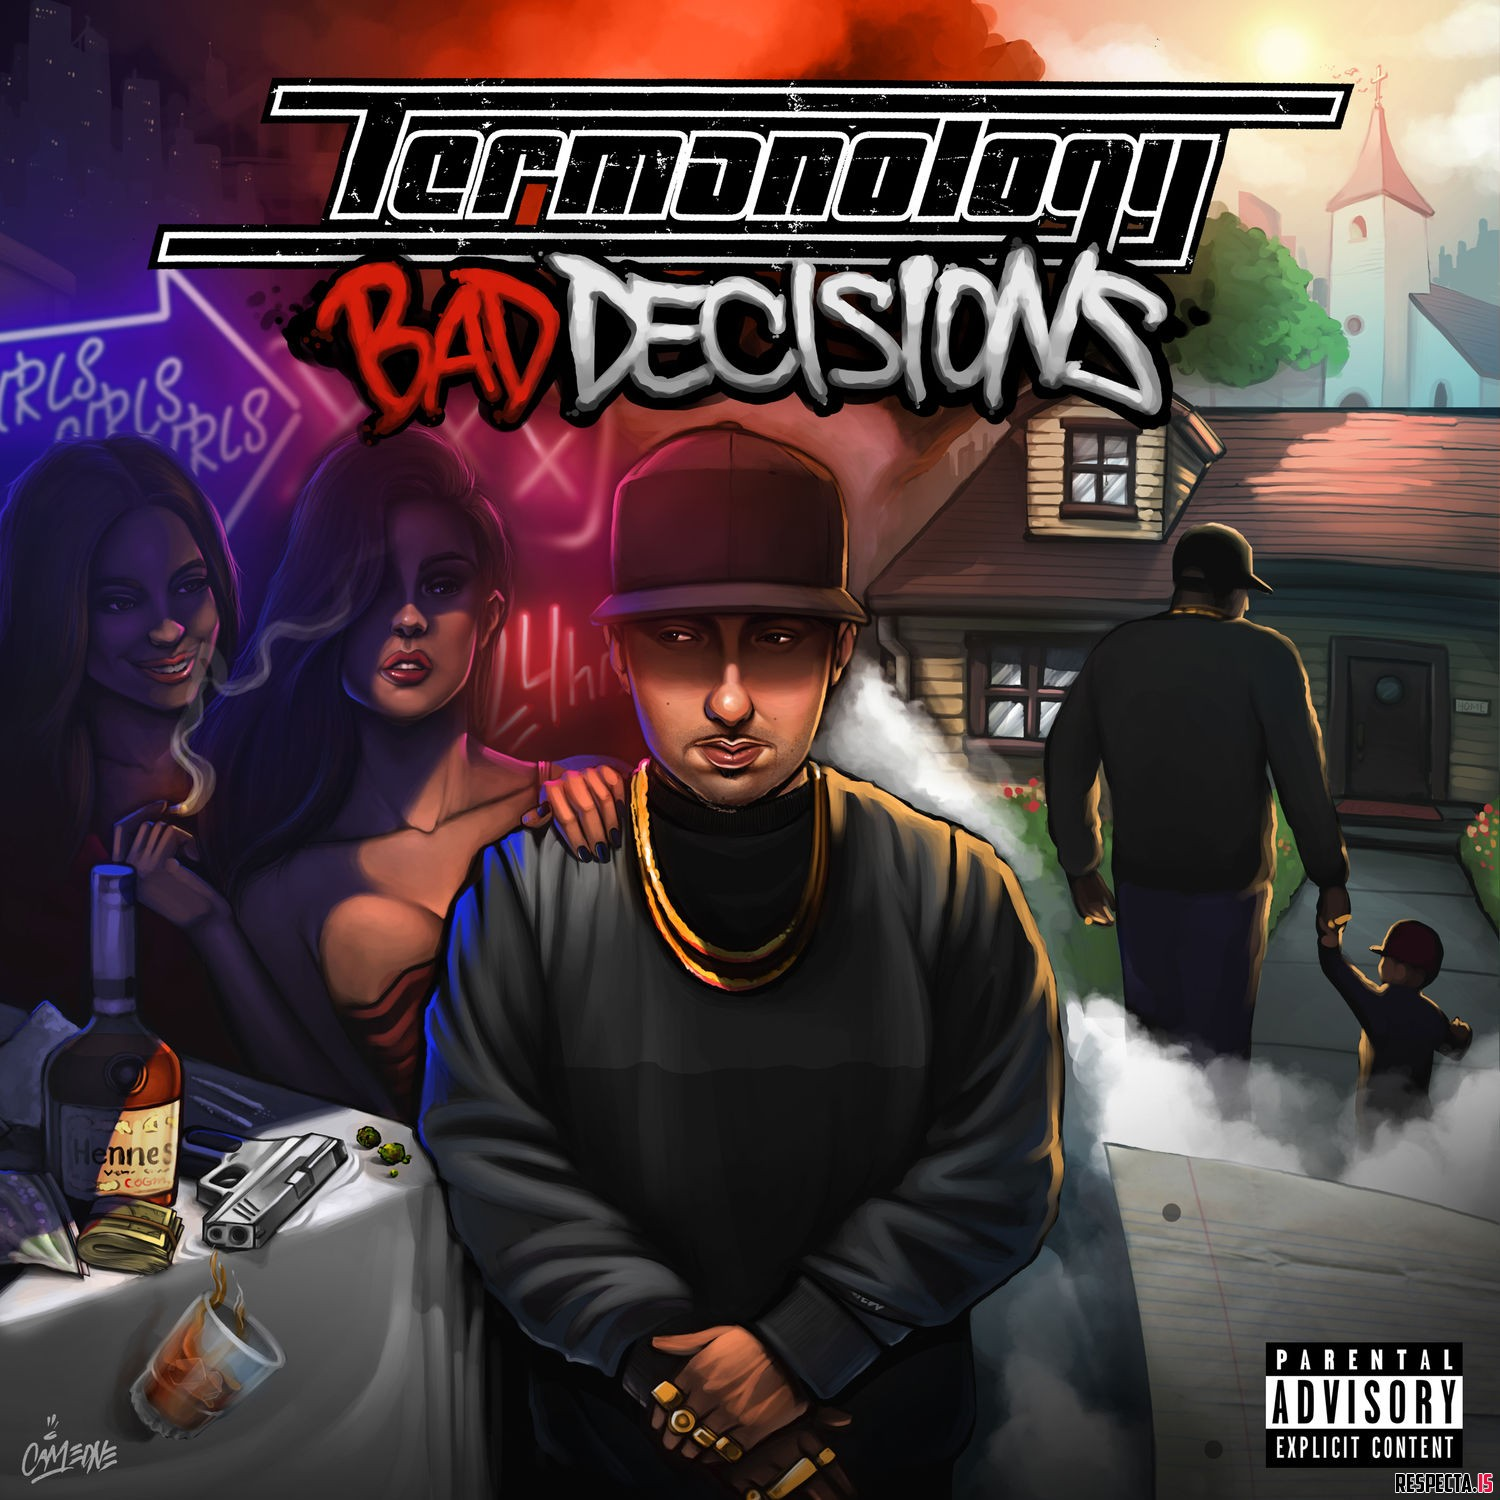 1533832802_termanology-bad-decisions.jpg